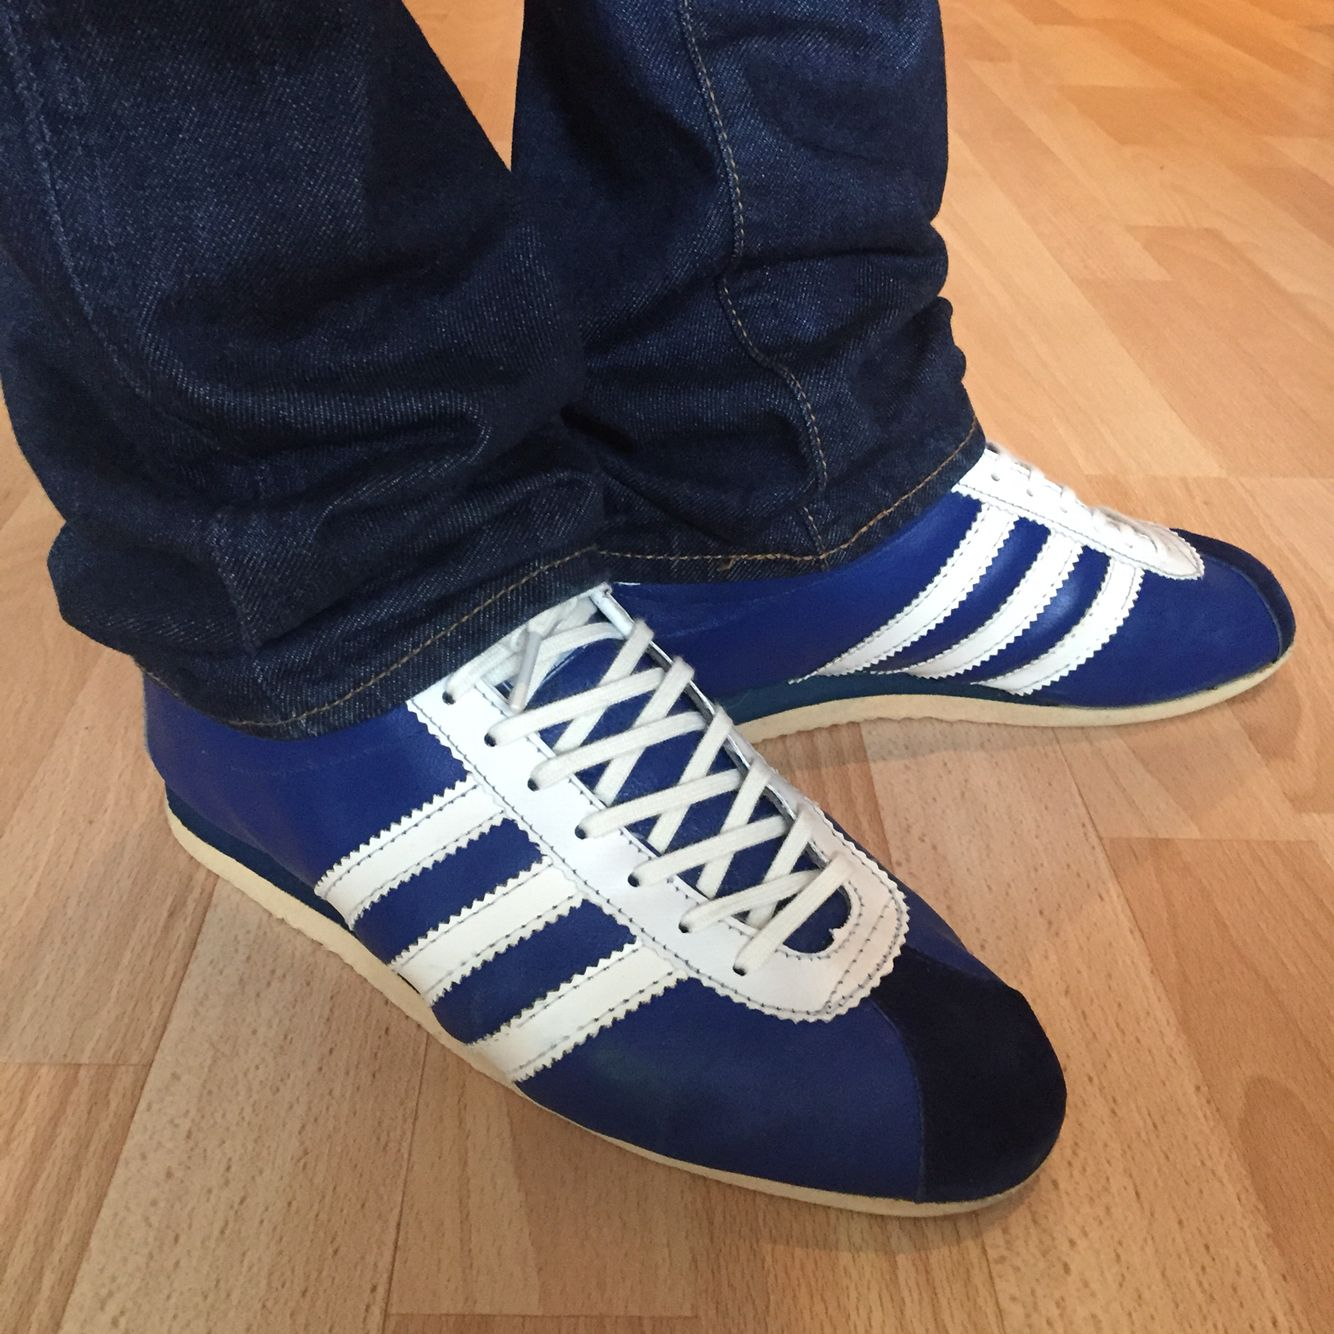 adidas Blue adidas Star Made in France 1974 Blue | | e559902 - allergistofbrug.website